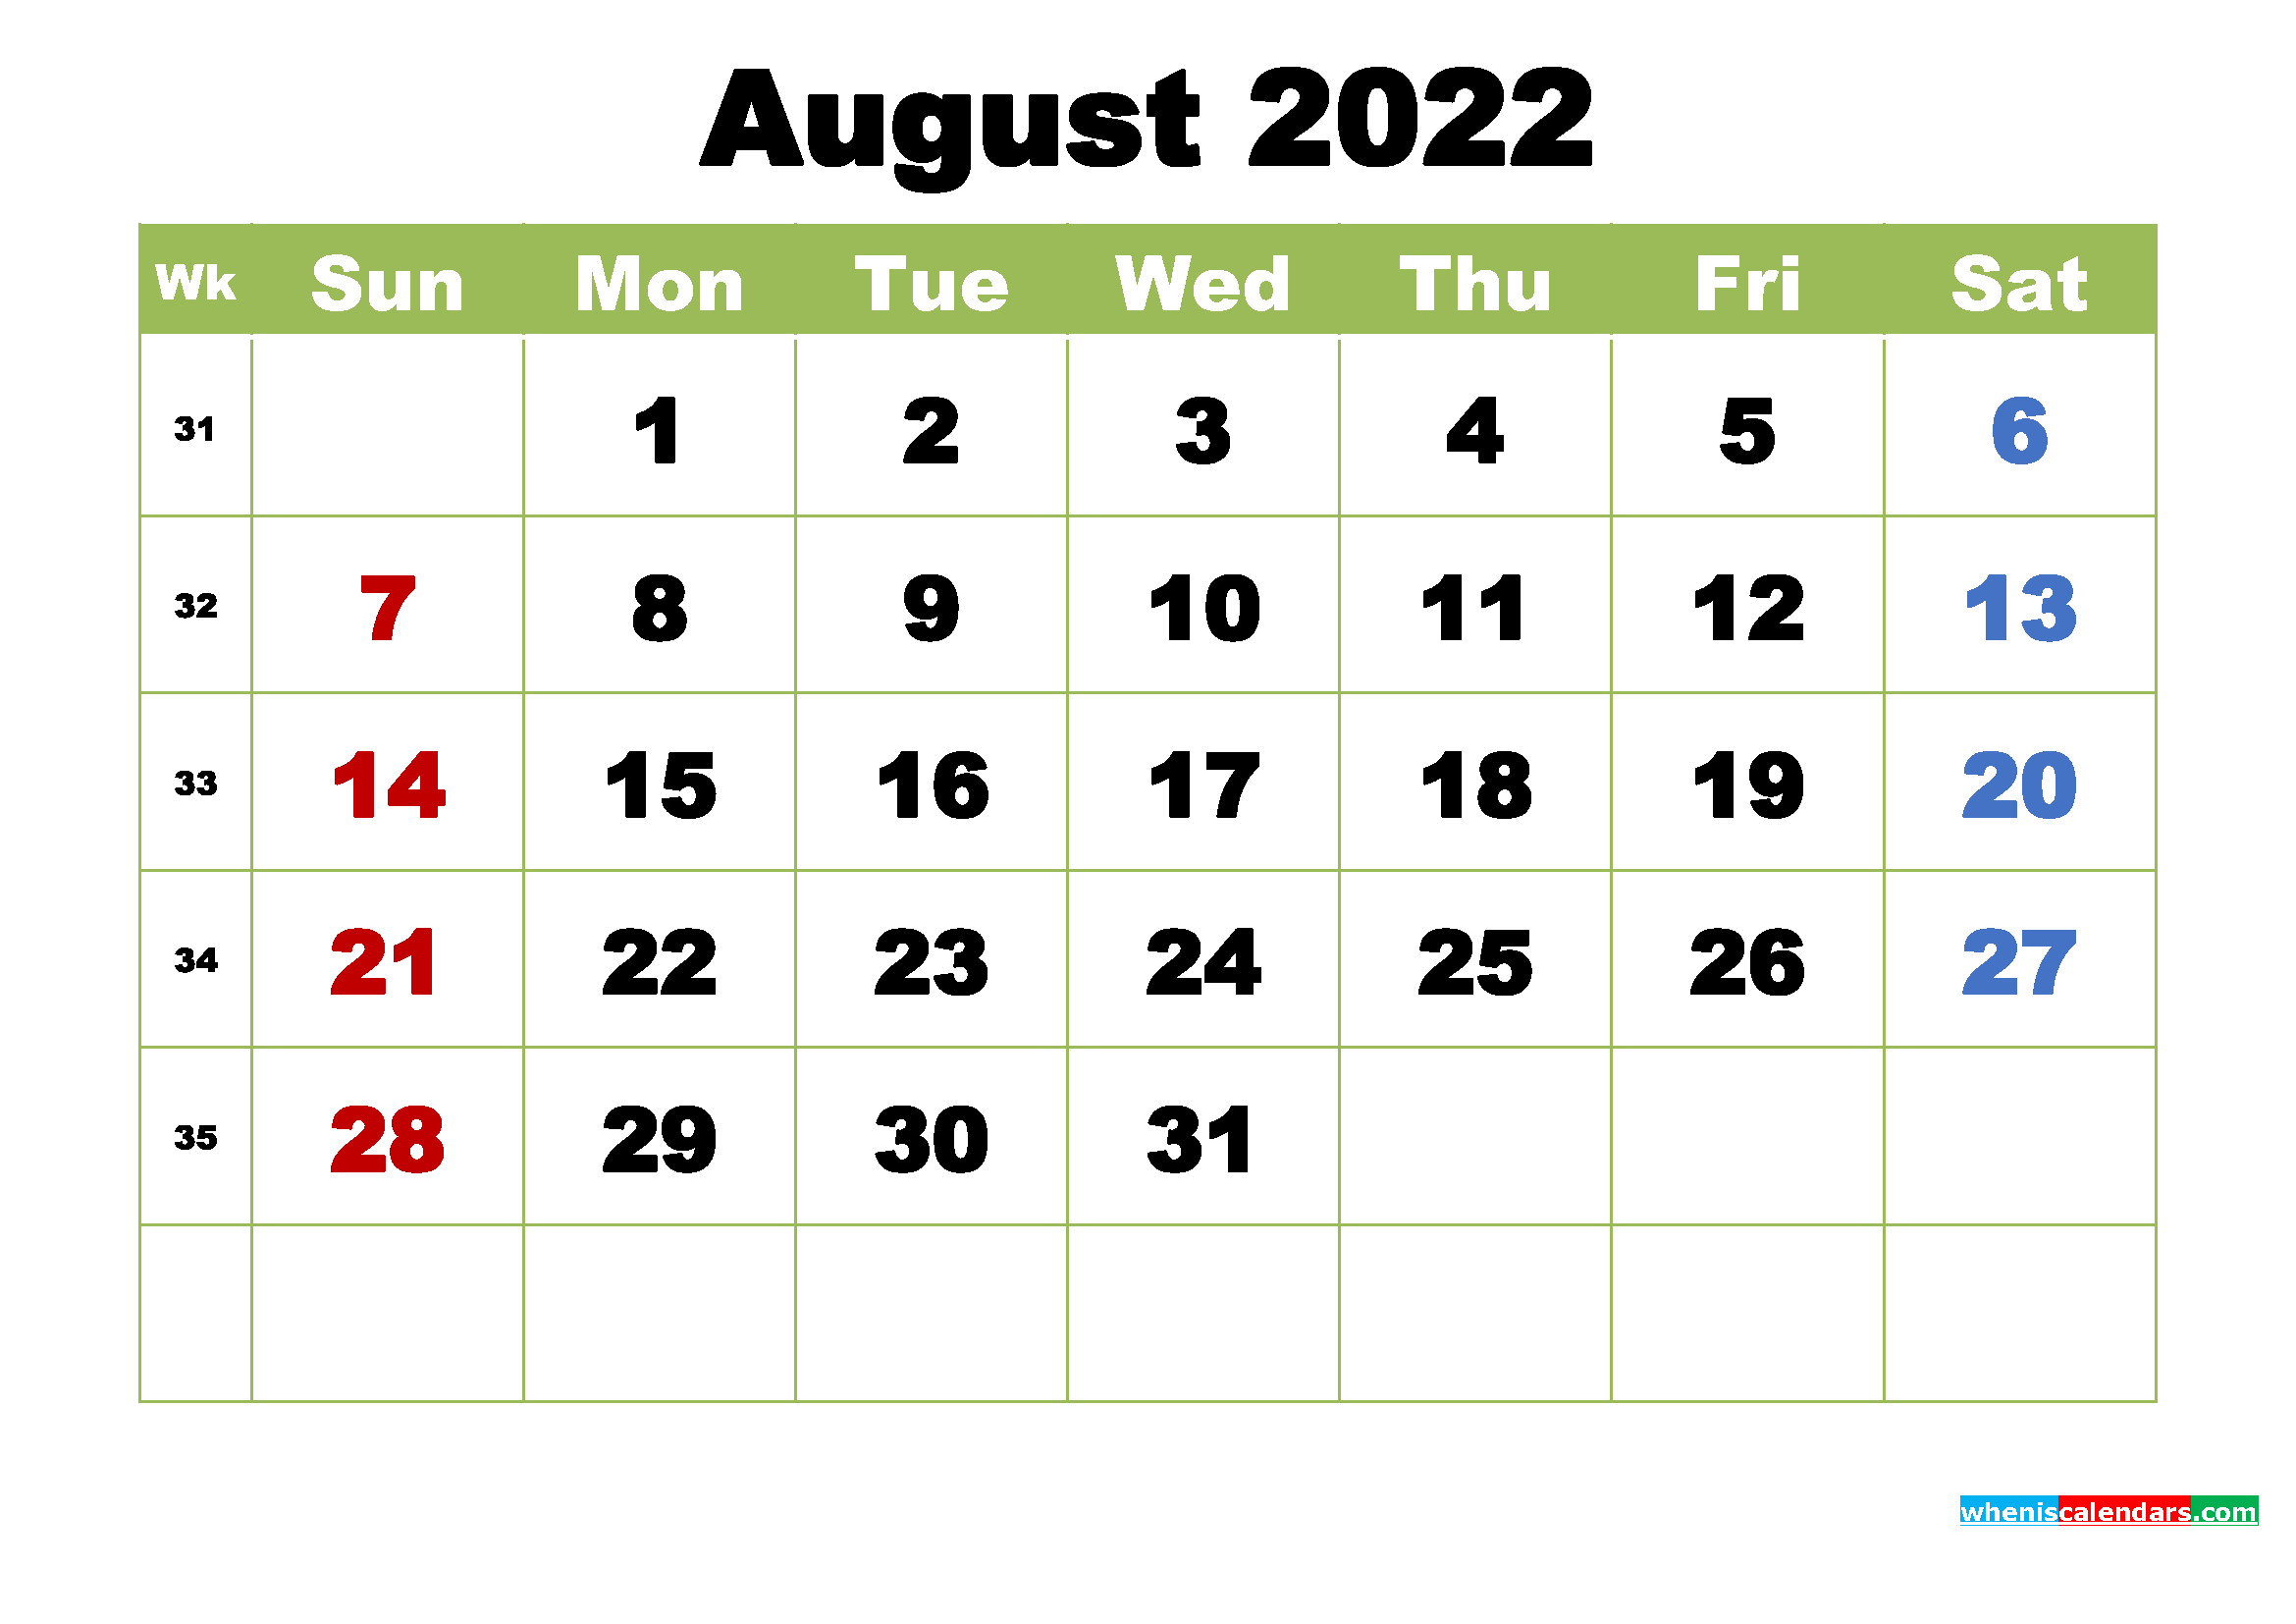 Free August 2022 Printable Calendar with Holidays